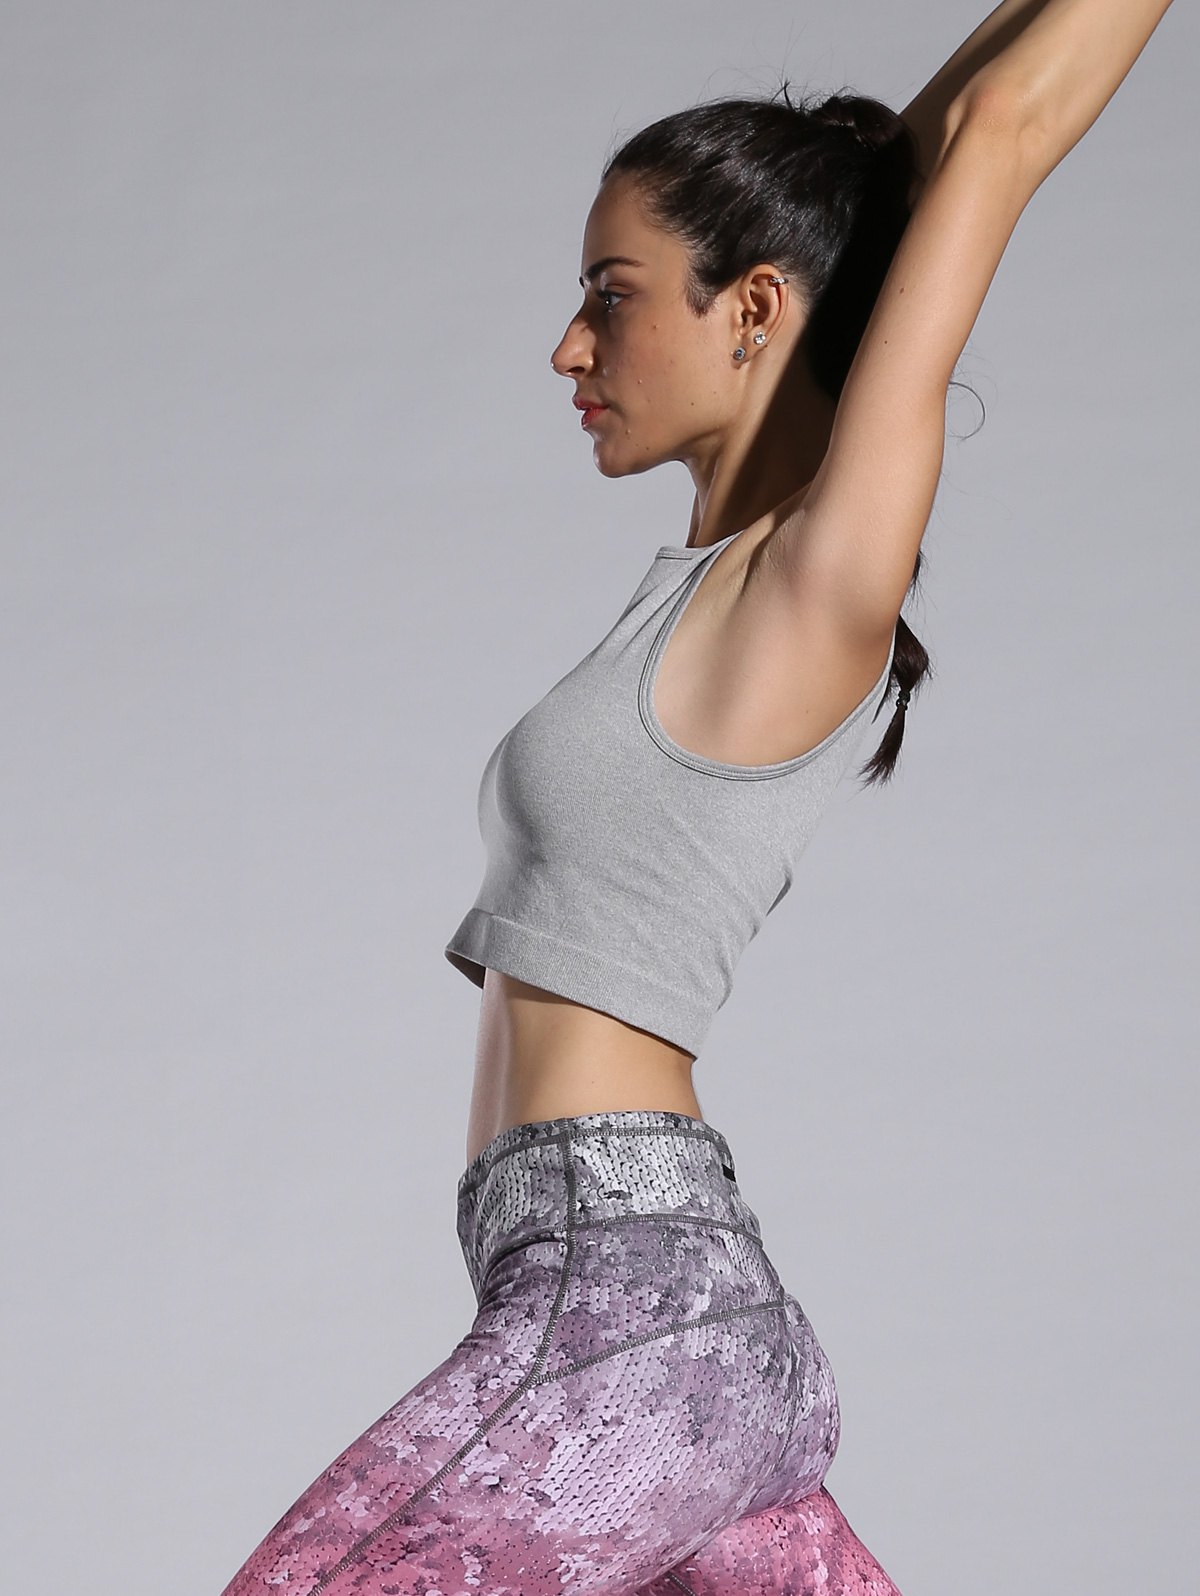 Slim Stretchy Sporty Crop Top - GRAY S